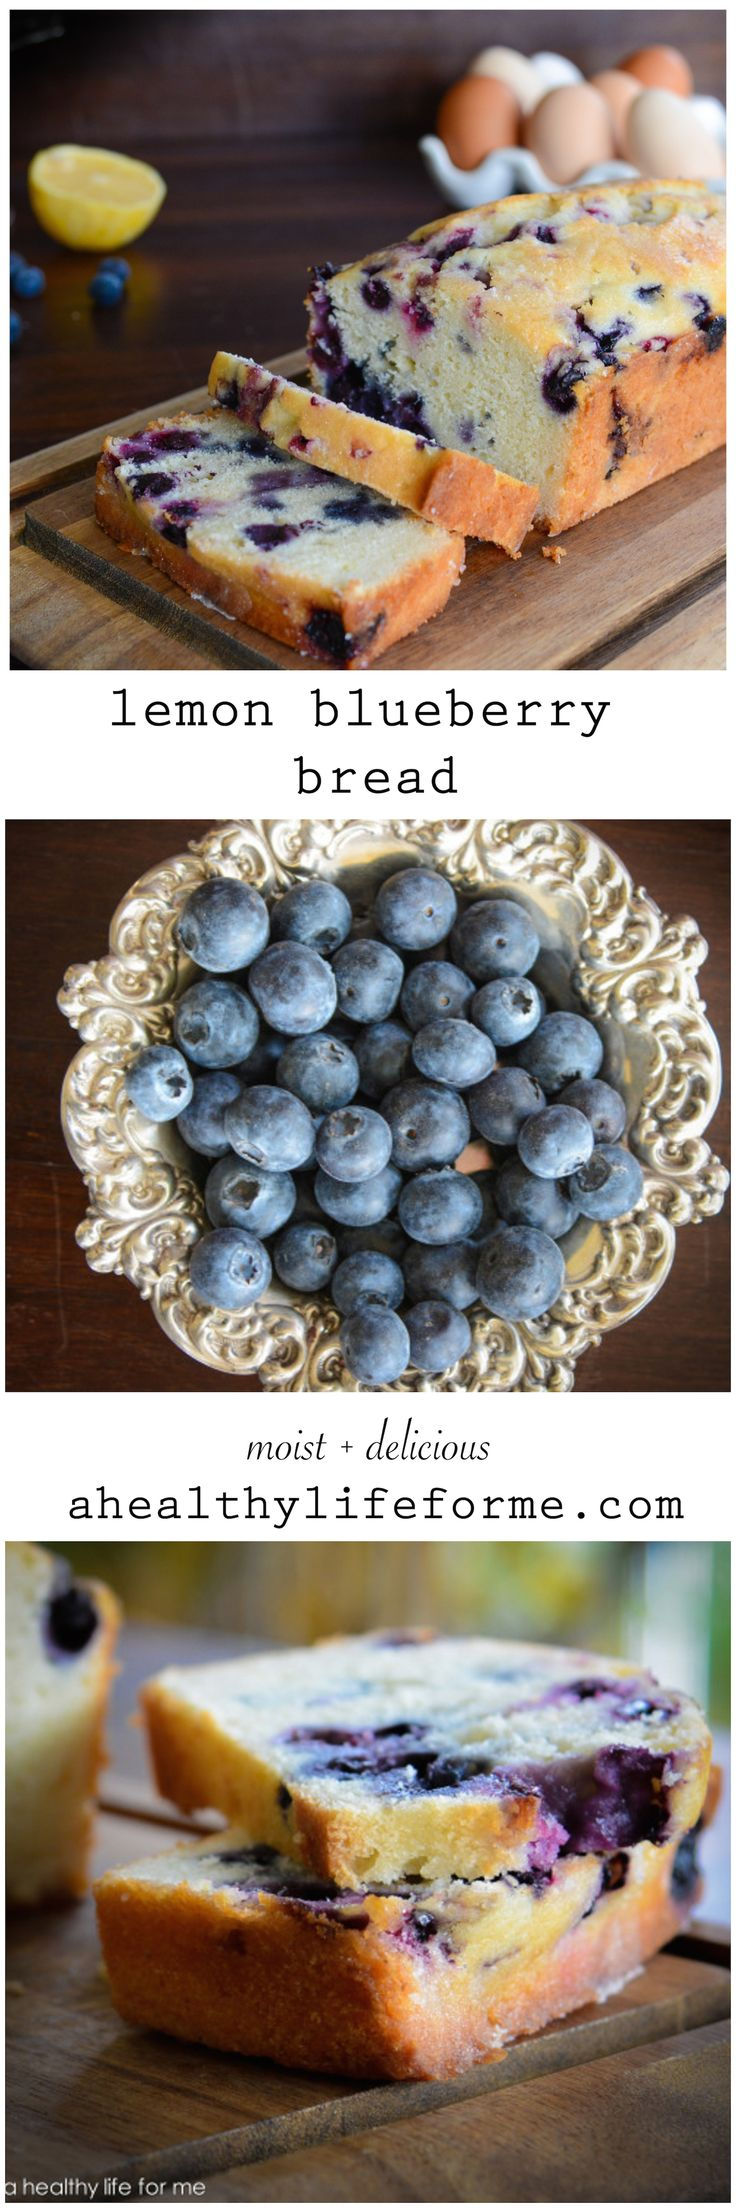 Lemon Blueberry Bread is the perfect sweet tart bread to enjoy in the morning with coffee or tea.  Or even as a light dessert | ahealthylifeforme.com